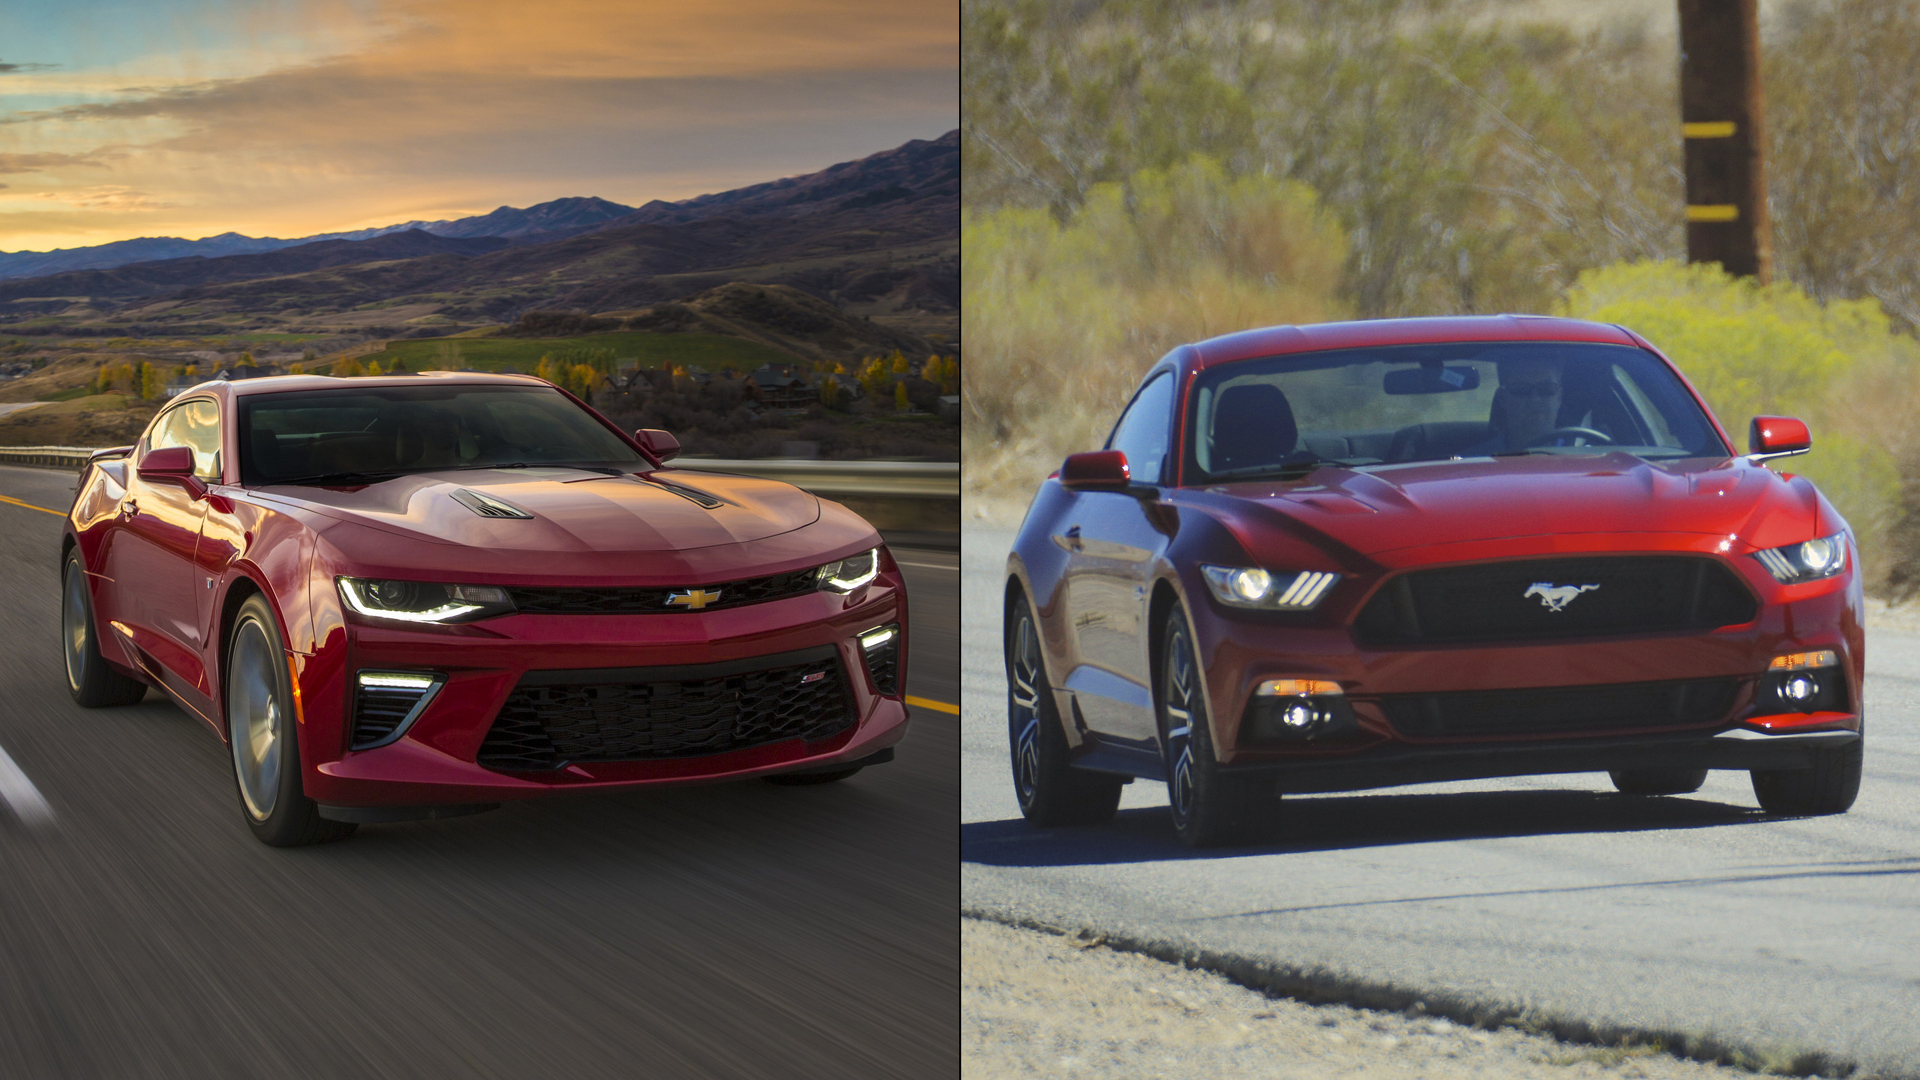 Difference between camaro and mustang